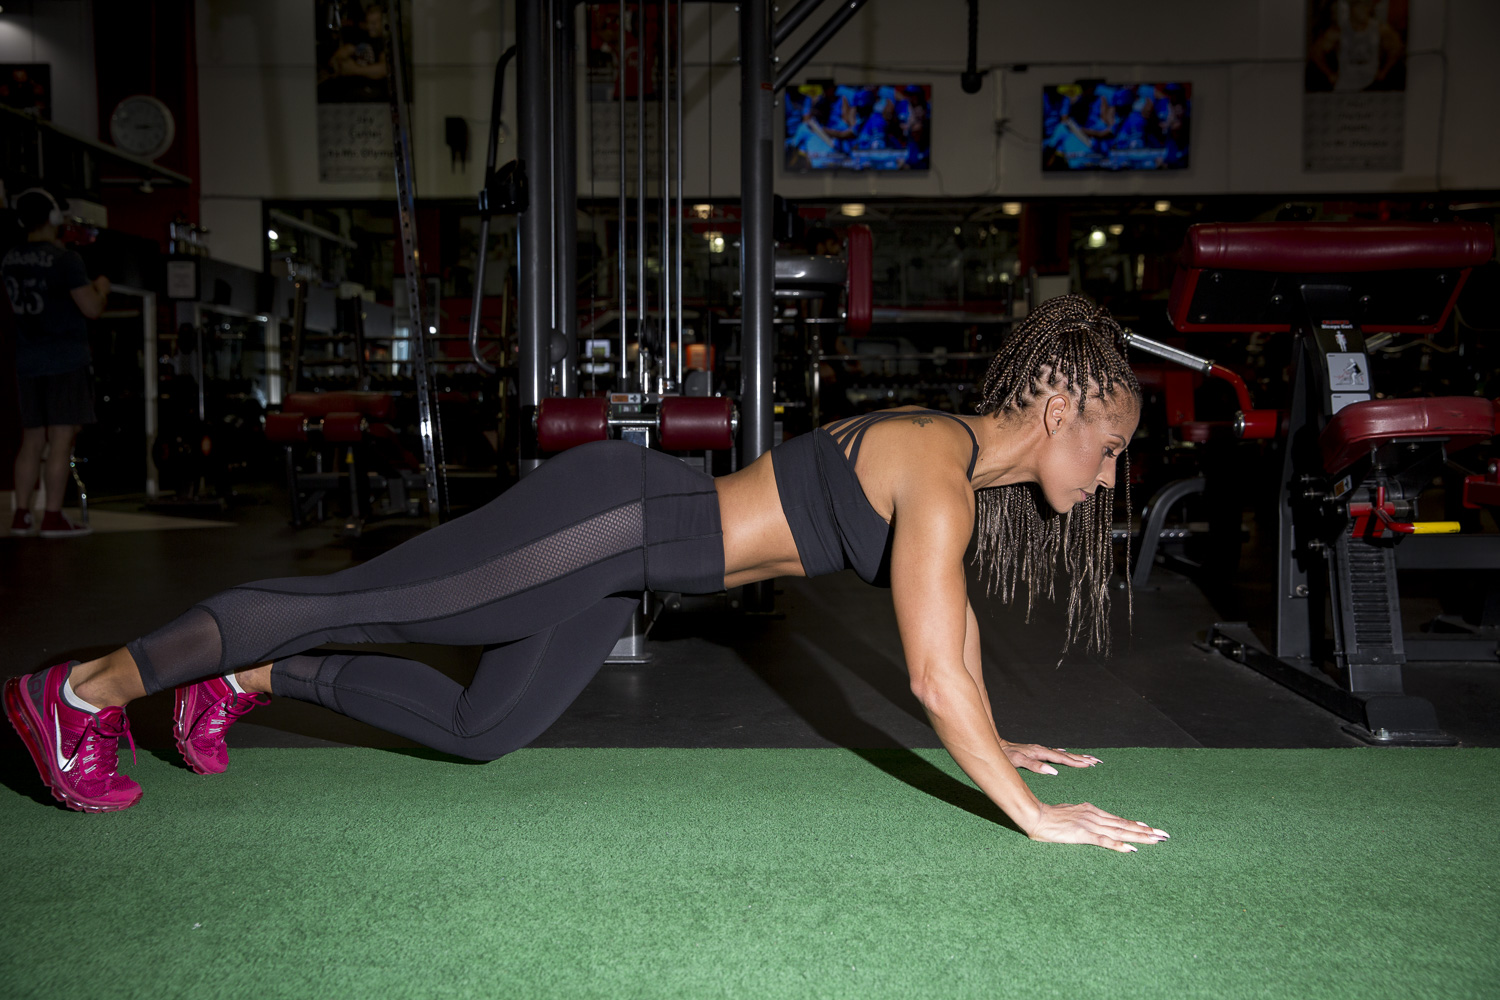 Vancouver Fitness Photographer - Fitness is my Forte (6 of 7).jpg